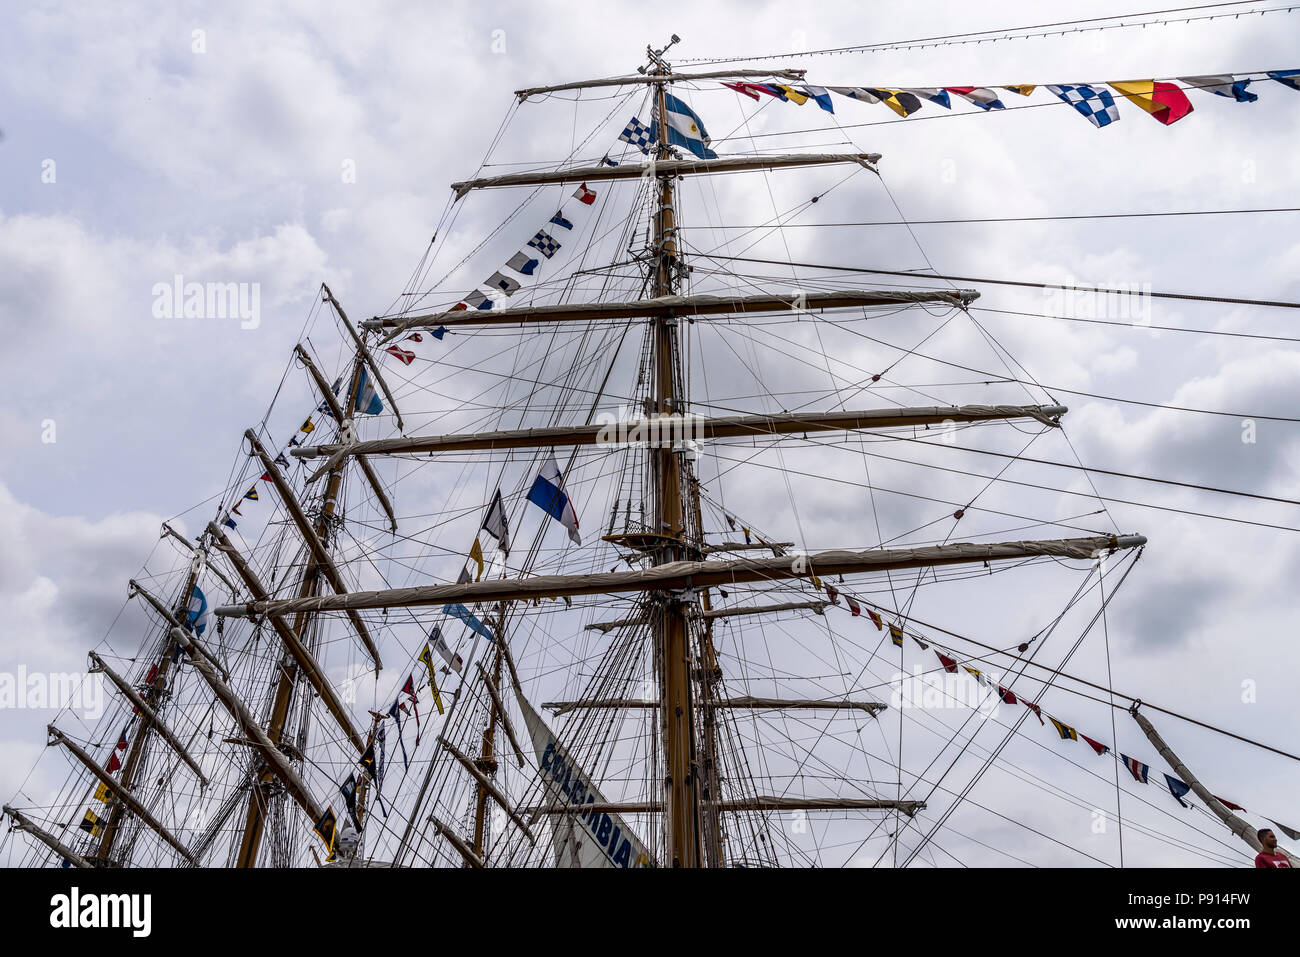 Mast of sailing vessels tall spar, or arrangement of spars at tall ships   Velas Latinoamerica 2018 regata - Stock Image